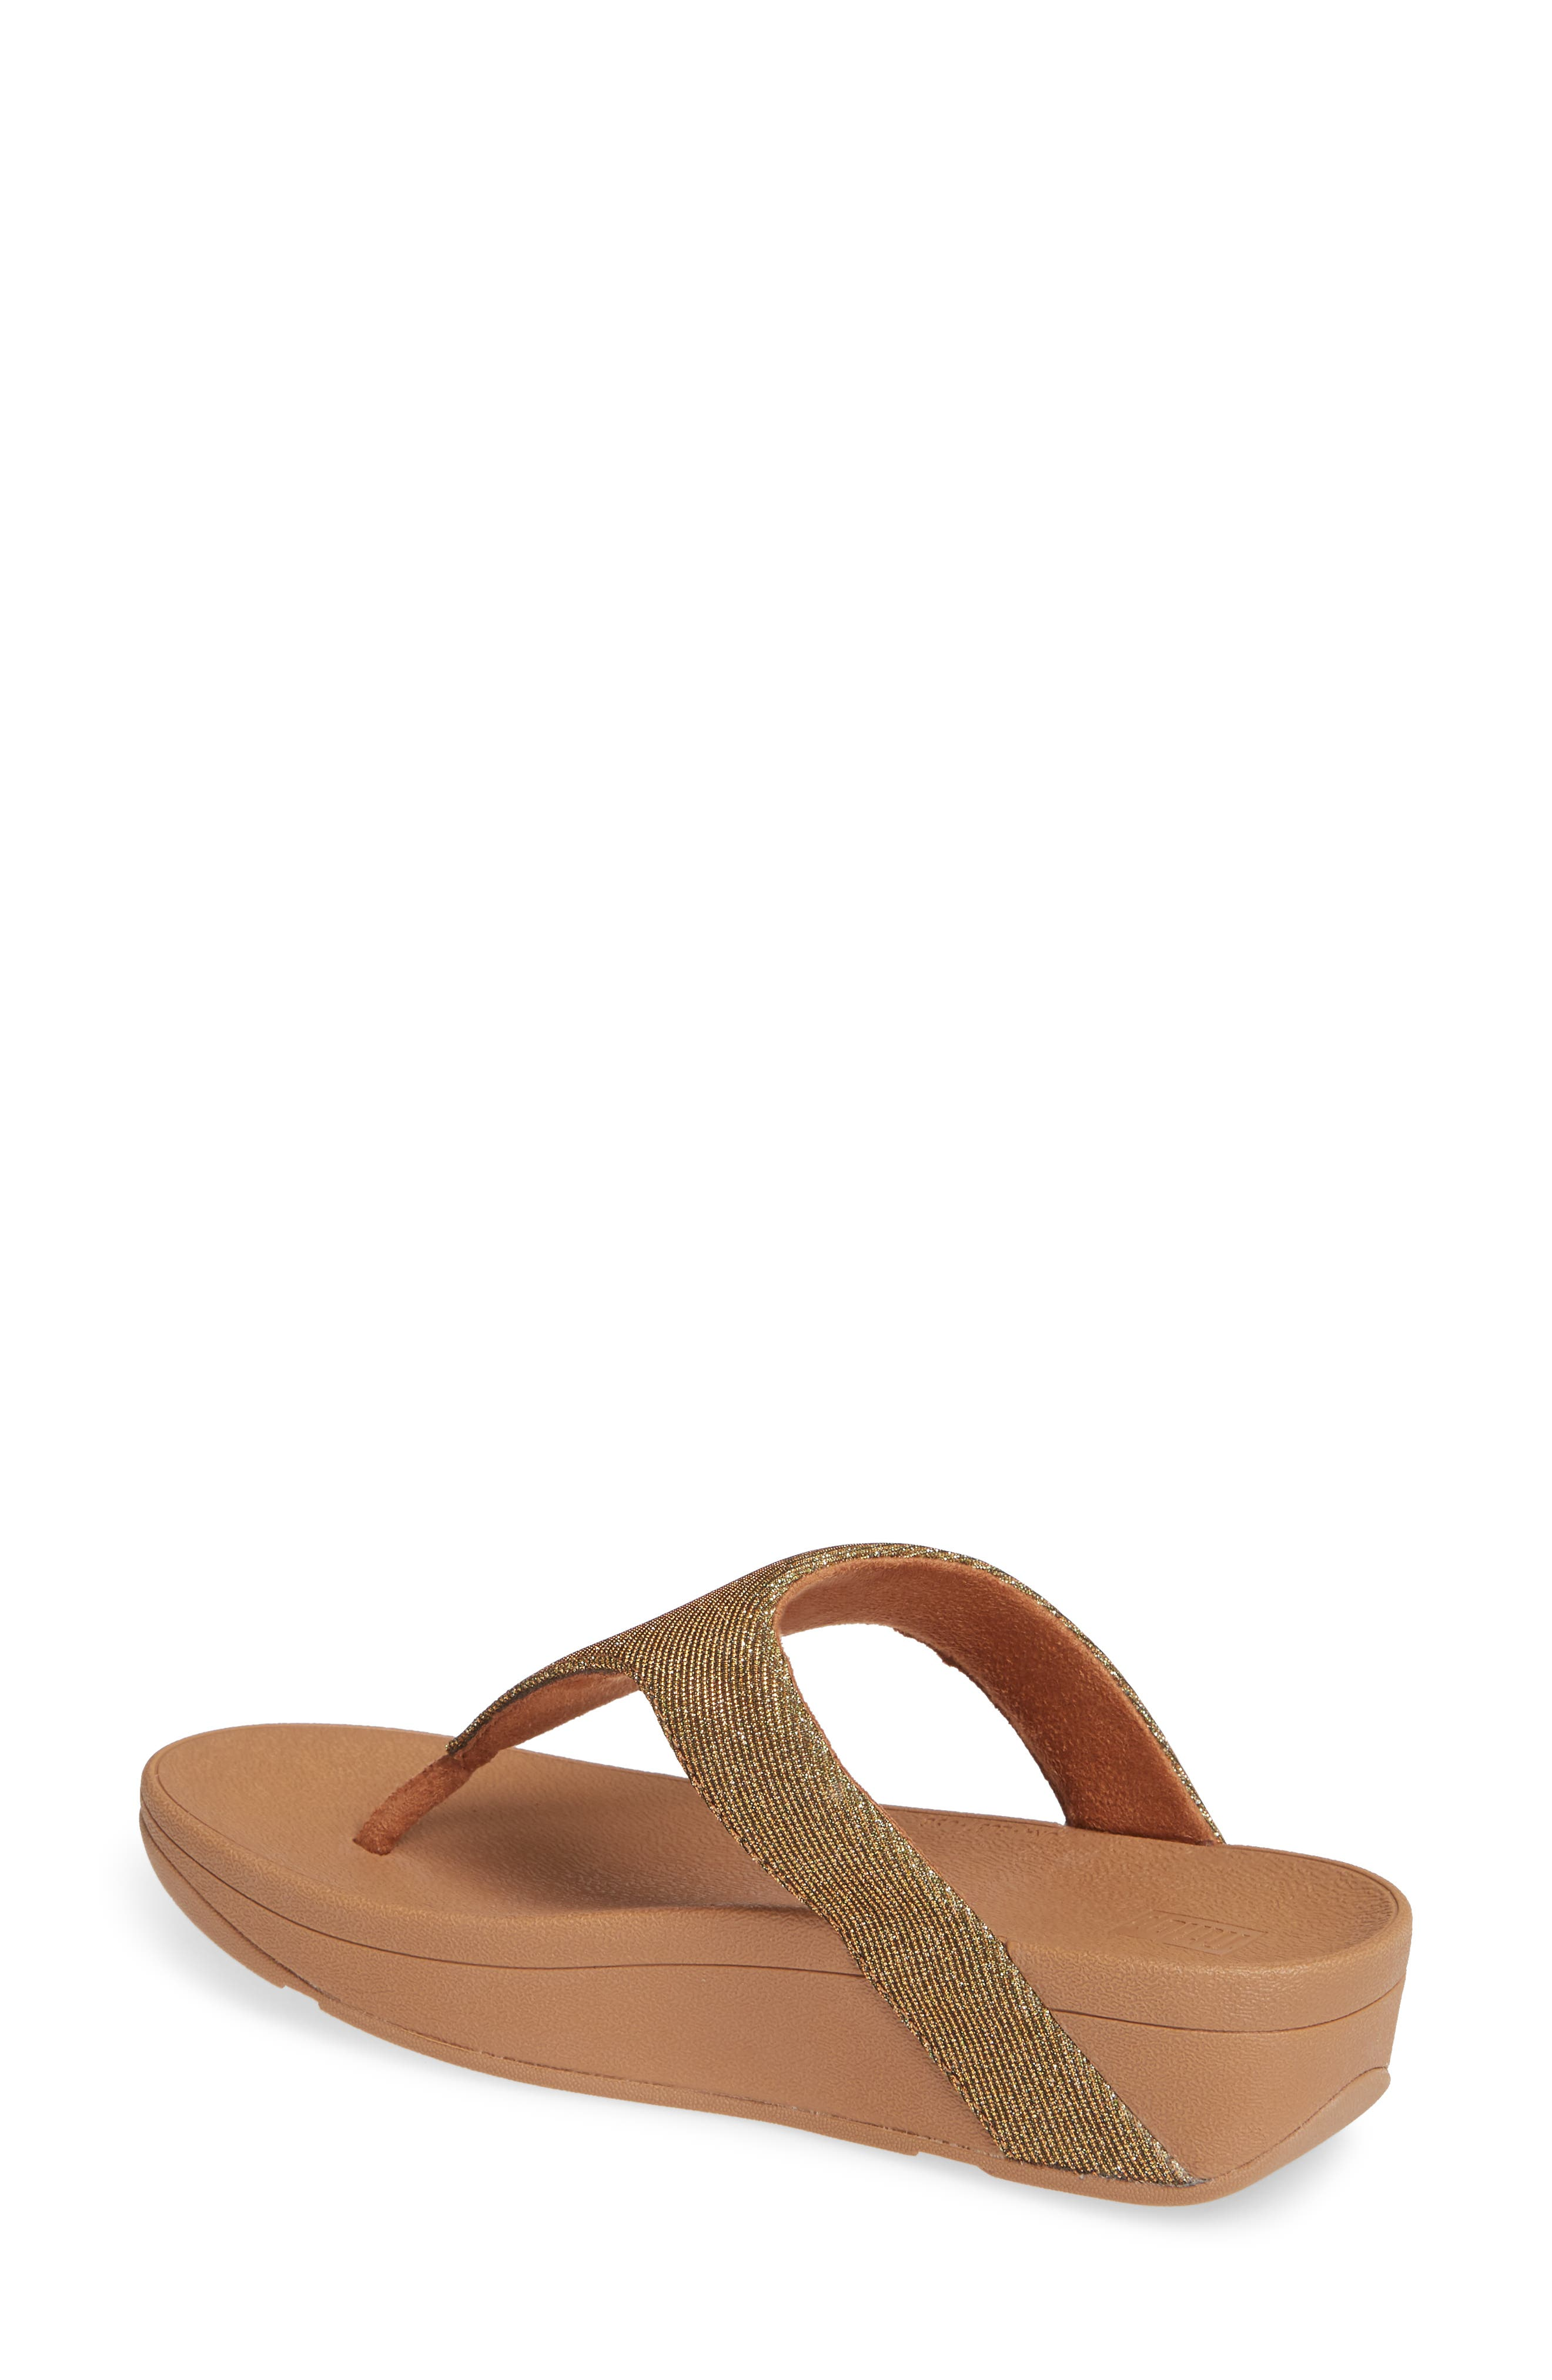 FITFLOP, Lottie Glitzy Wedge Flip Flop, Alternate thumbnail 2, color, ARTISAN GOLD